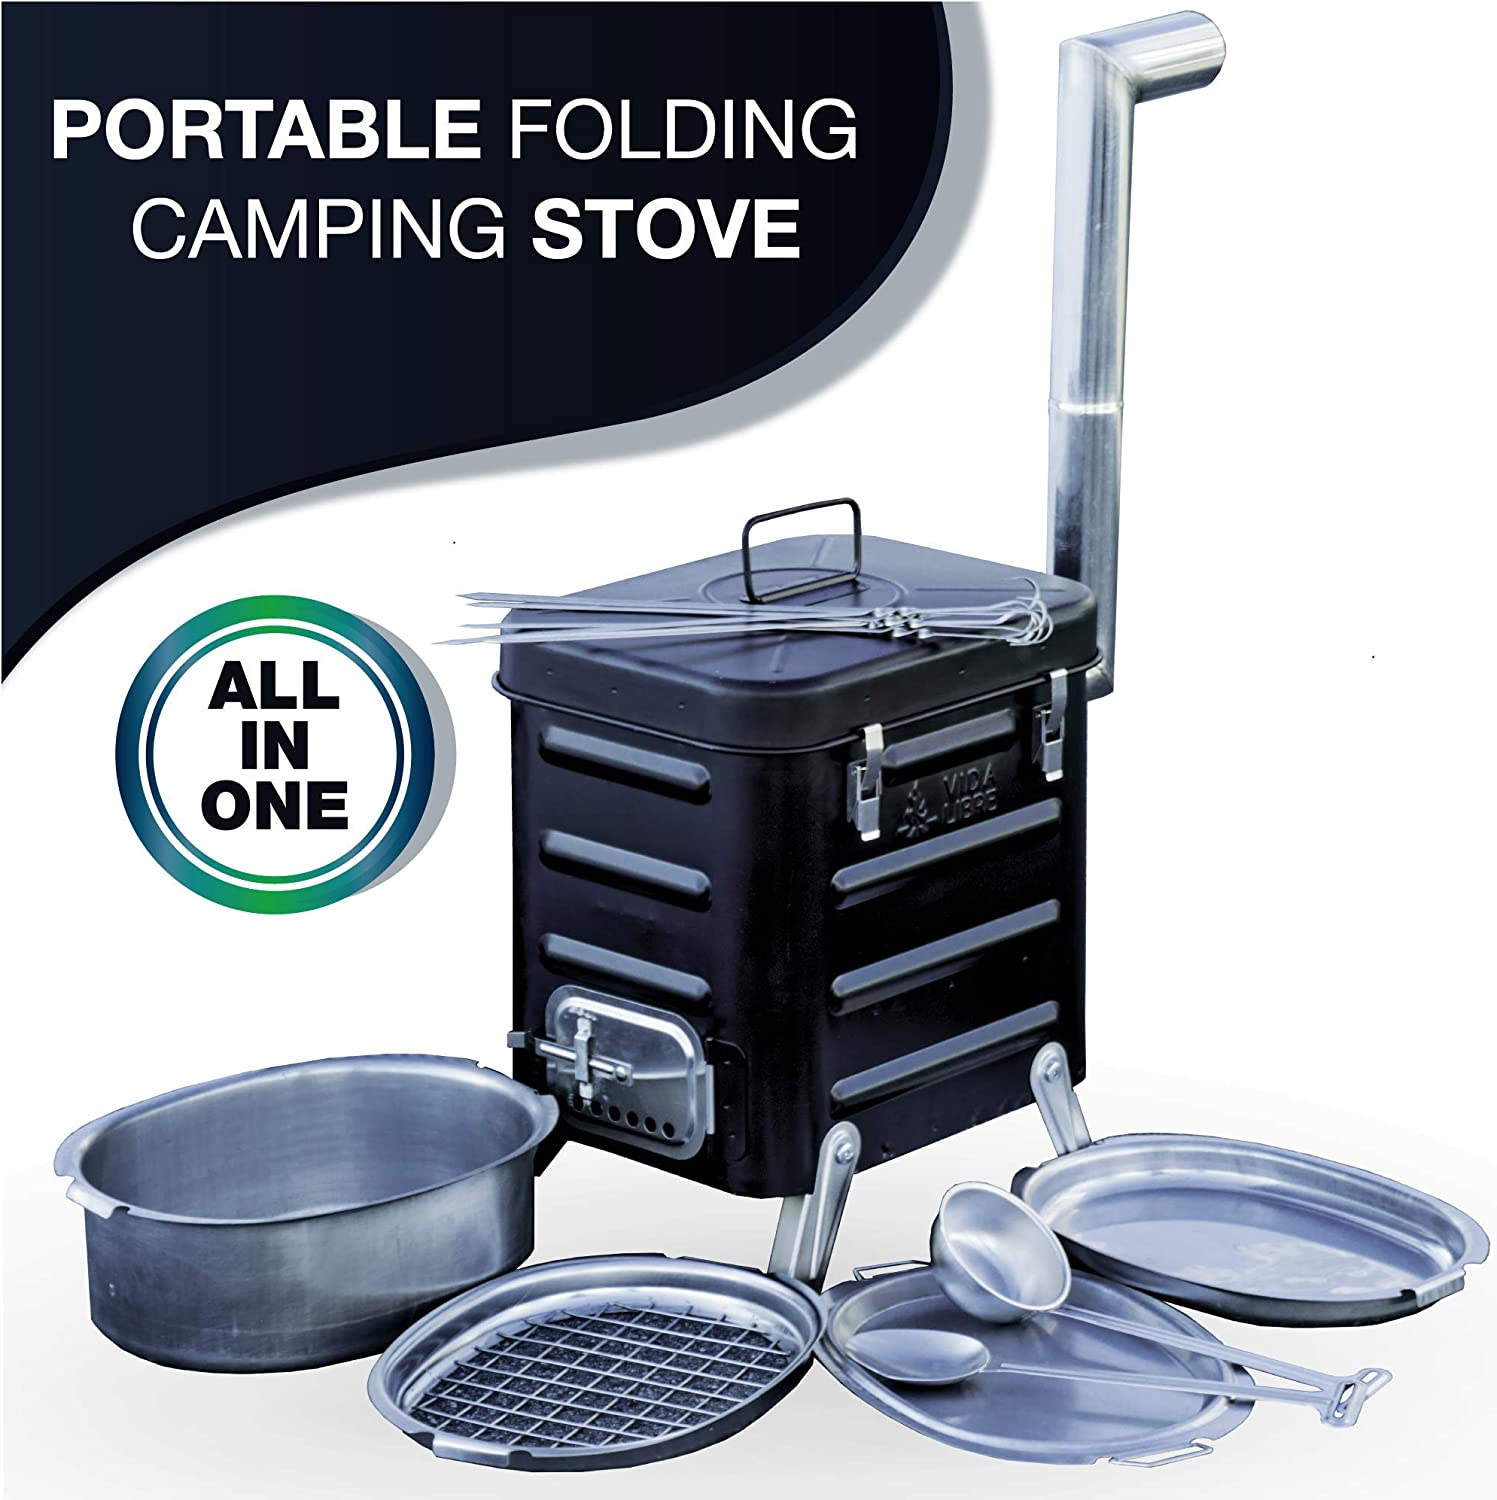 Camping Stove Portable Outdoor Charcoal Biomass and Wood Burning Folding Camp Stove for Camping, Hiking, Fishing, Hunting, RV, Emergency Preparedness – Portable Camping Grill – BBQ Rocket Stove